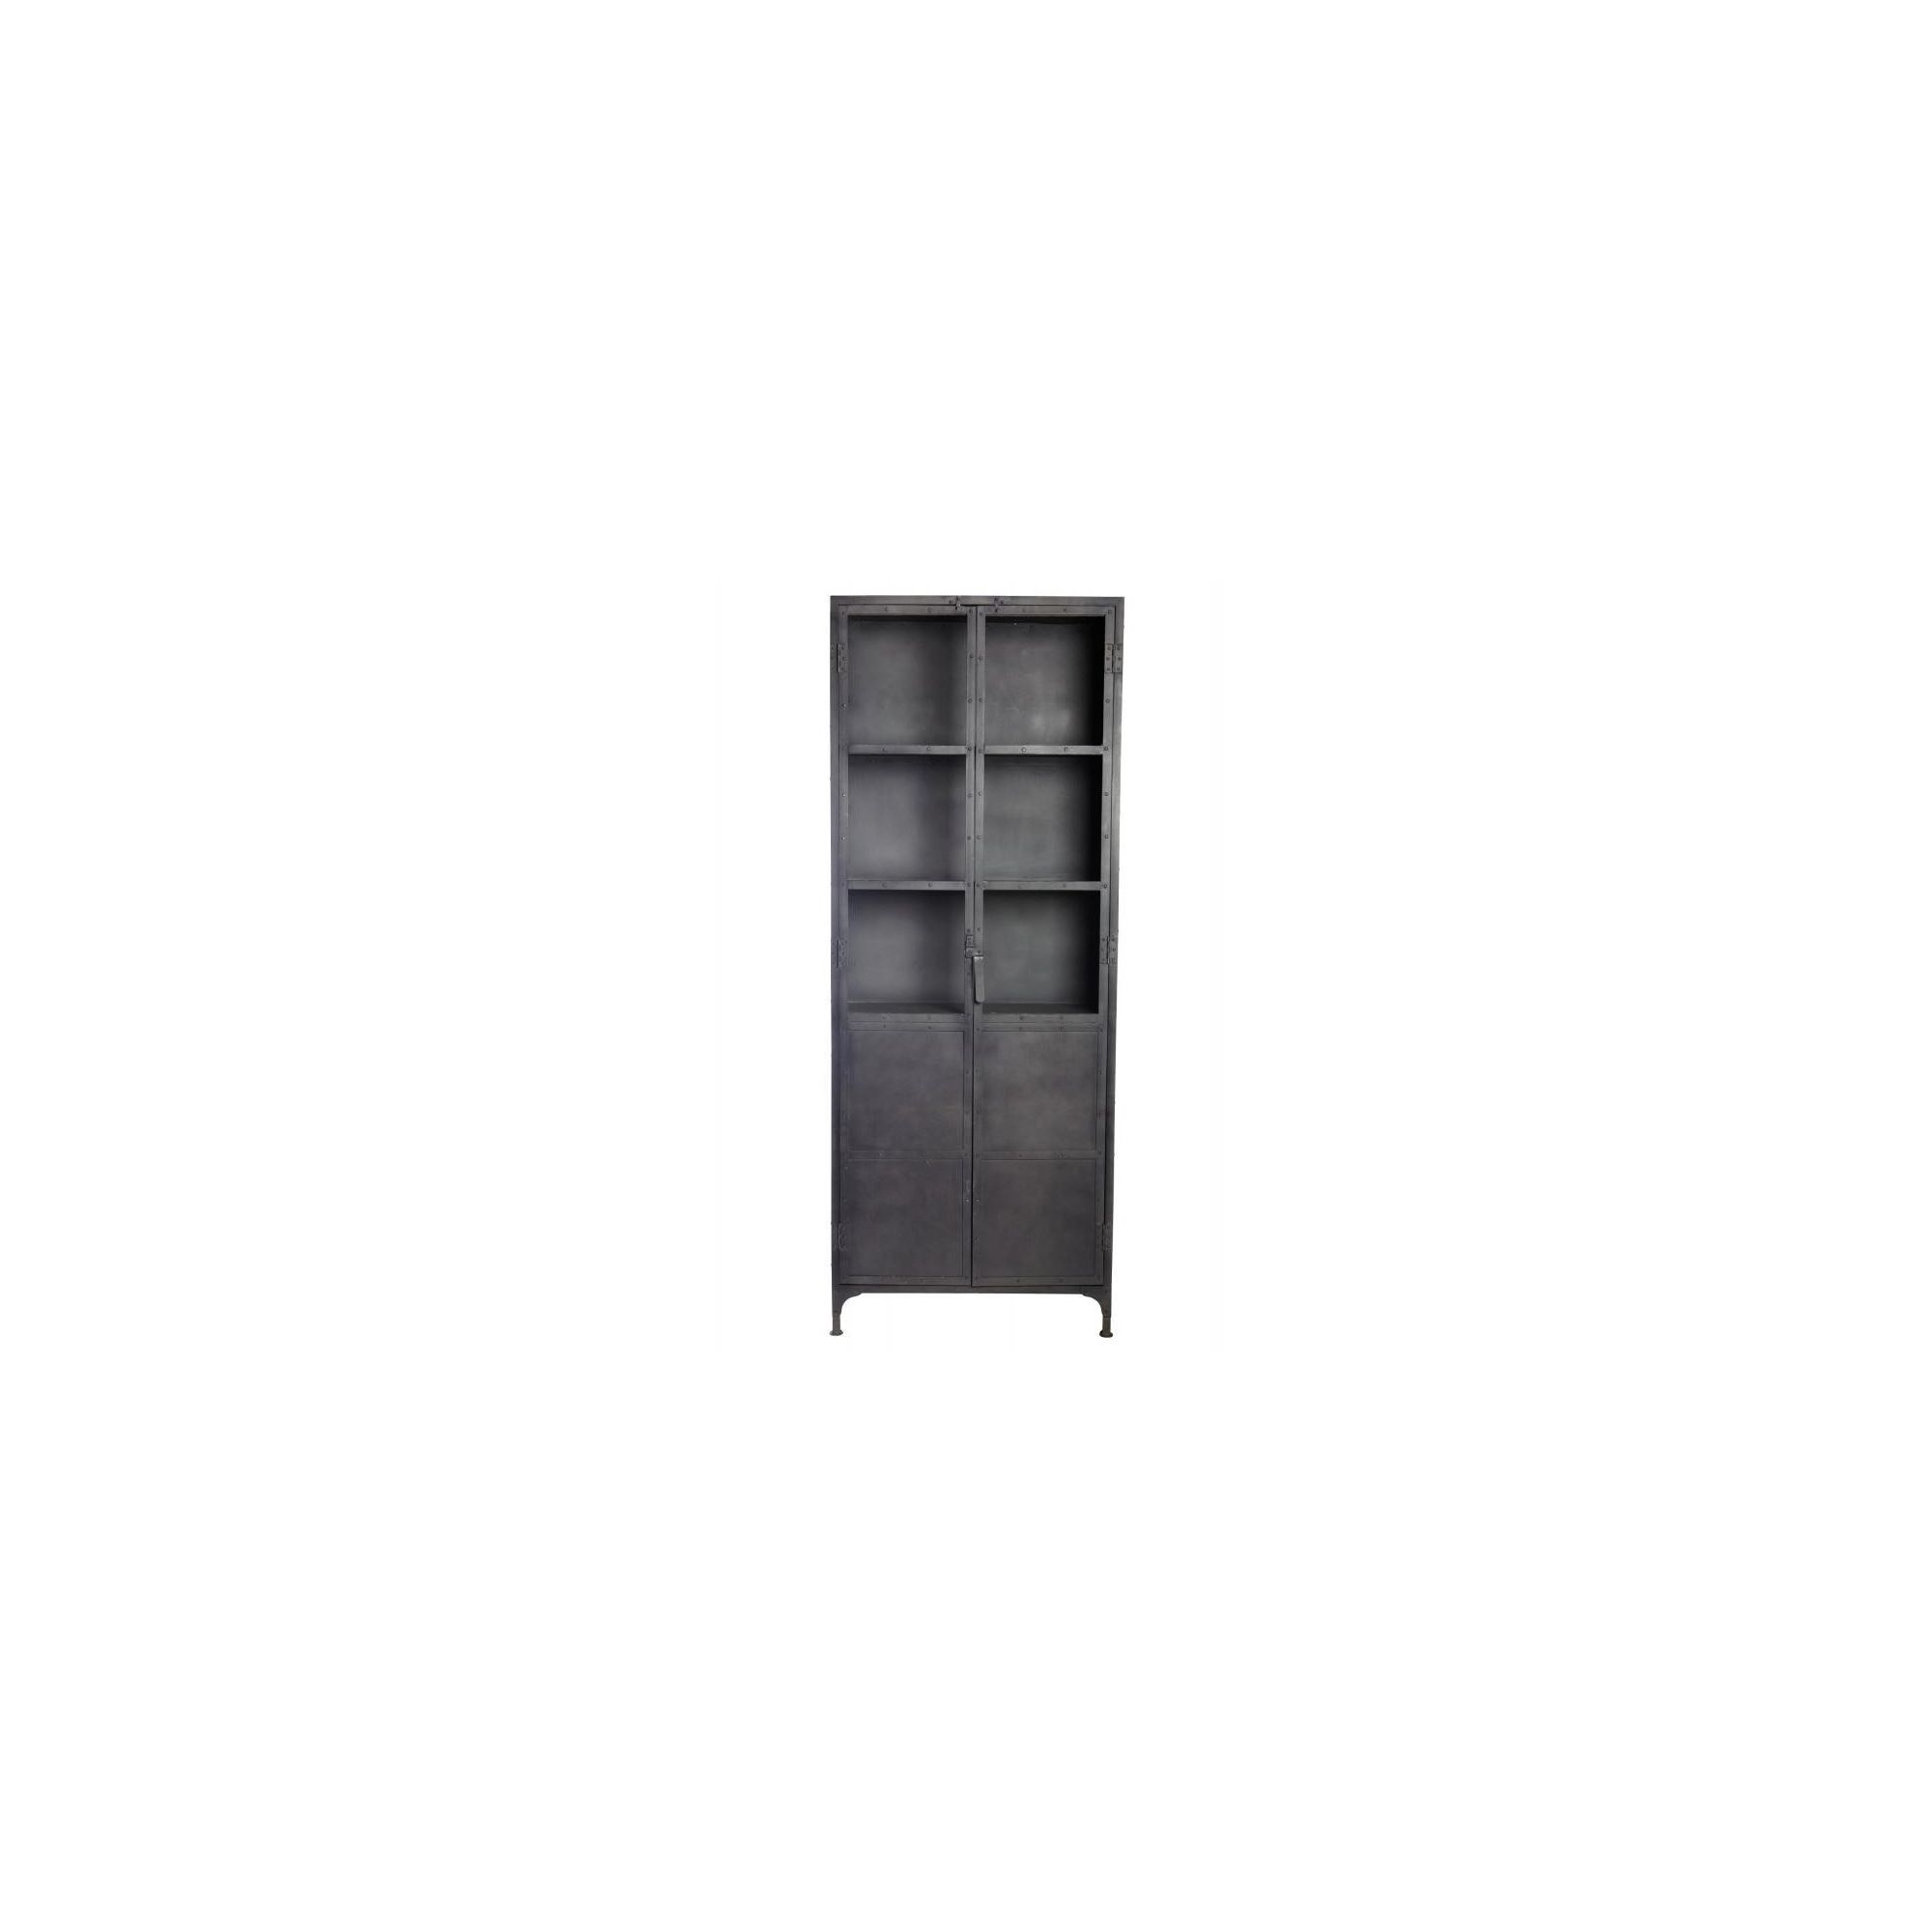 Factory metal cabinet at Tesco Direct